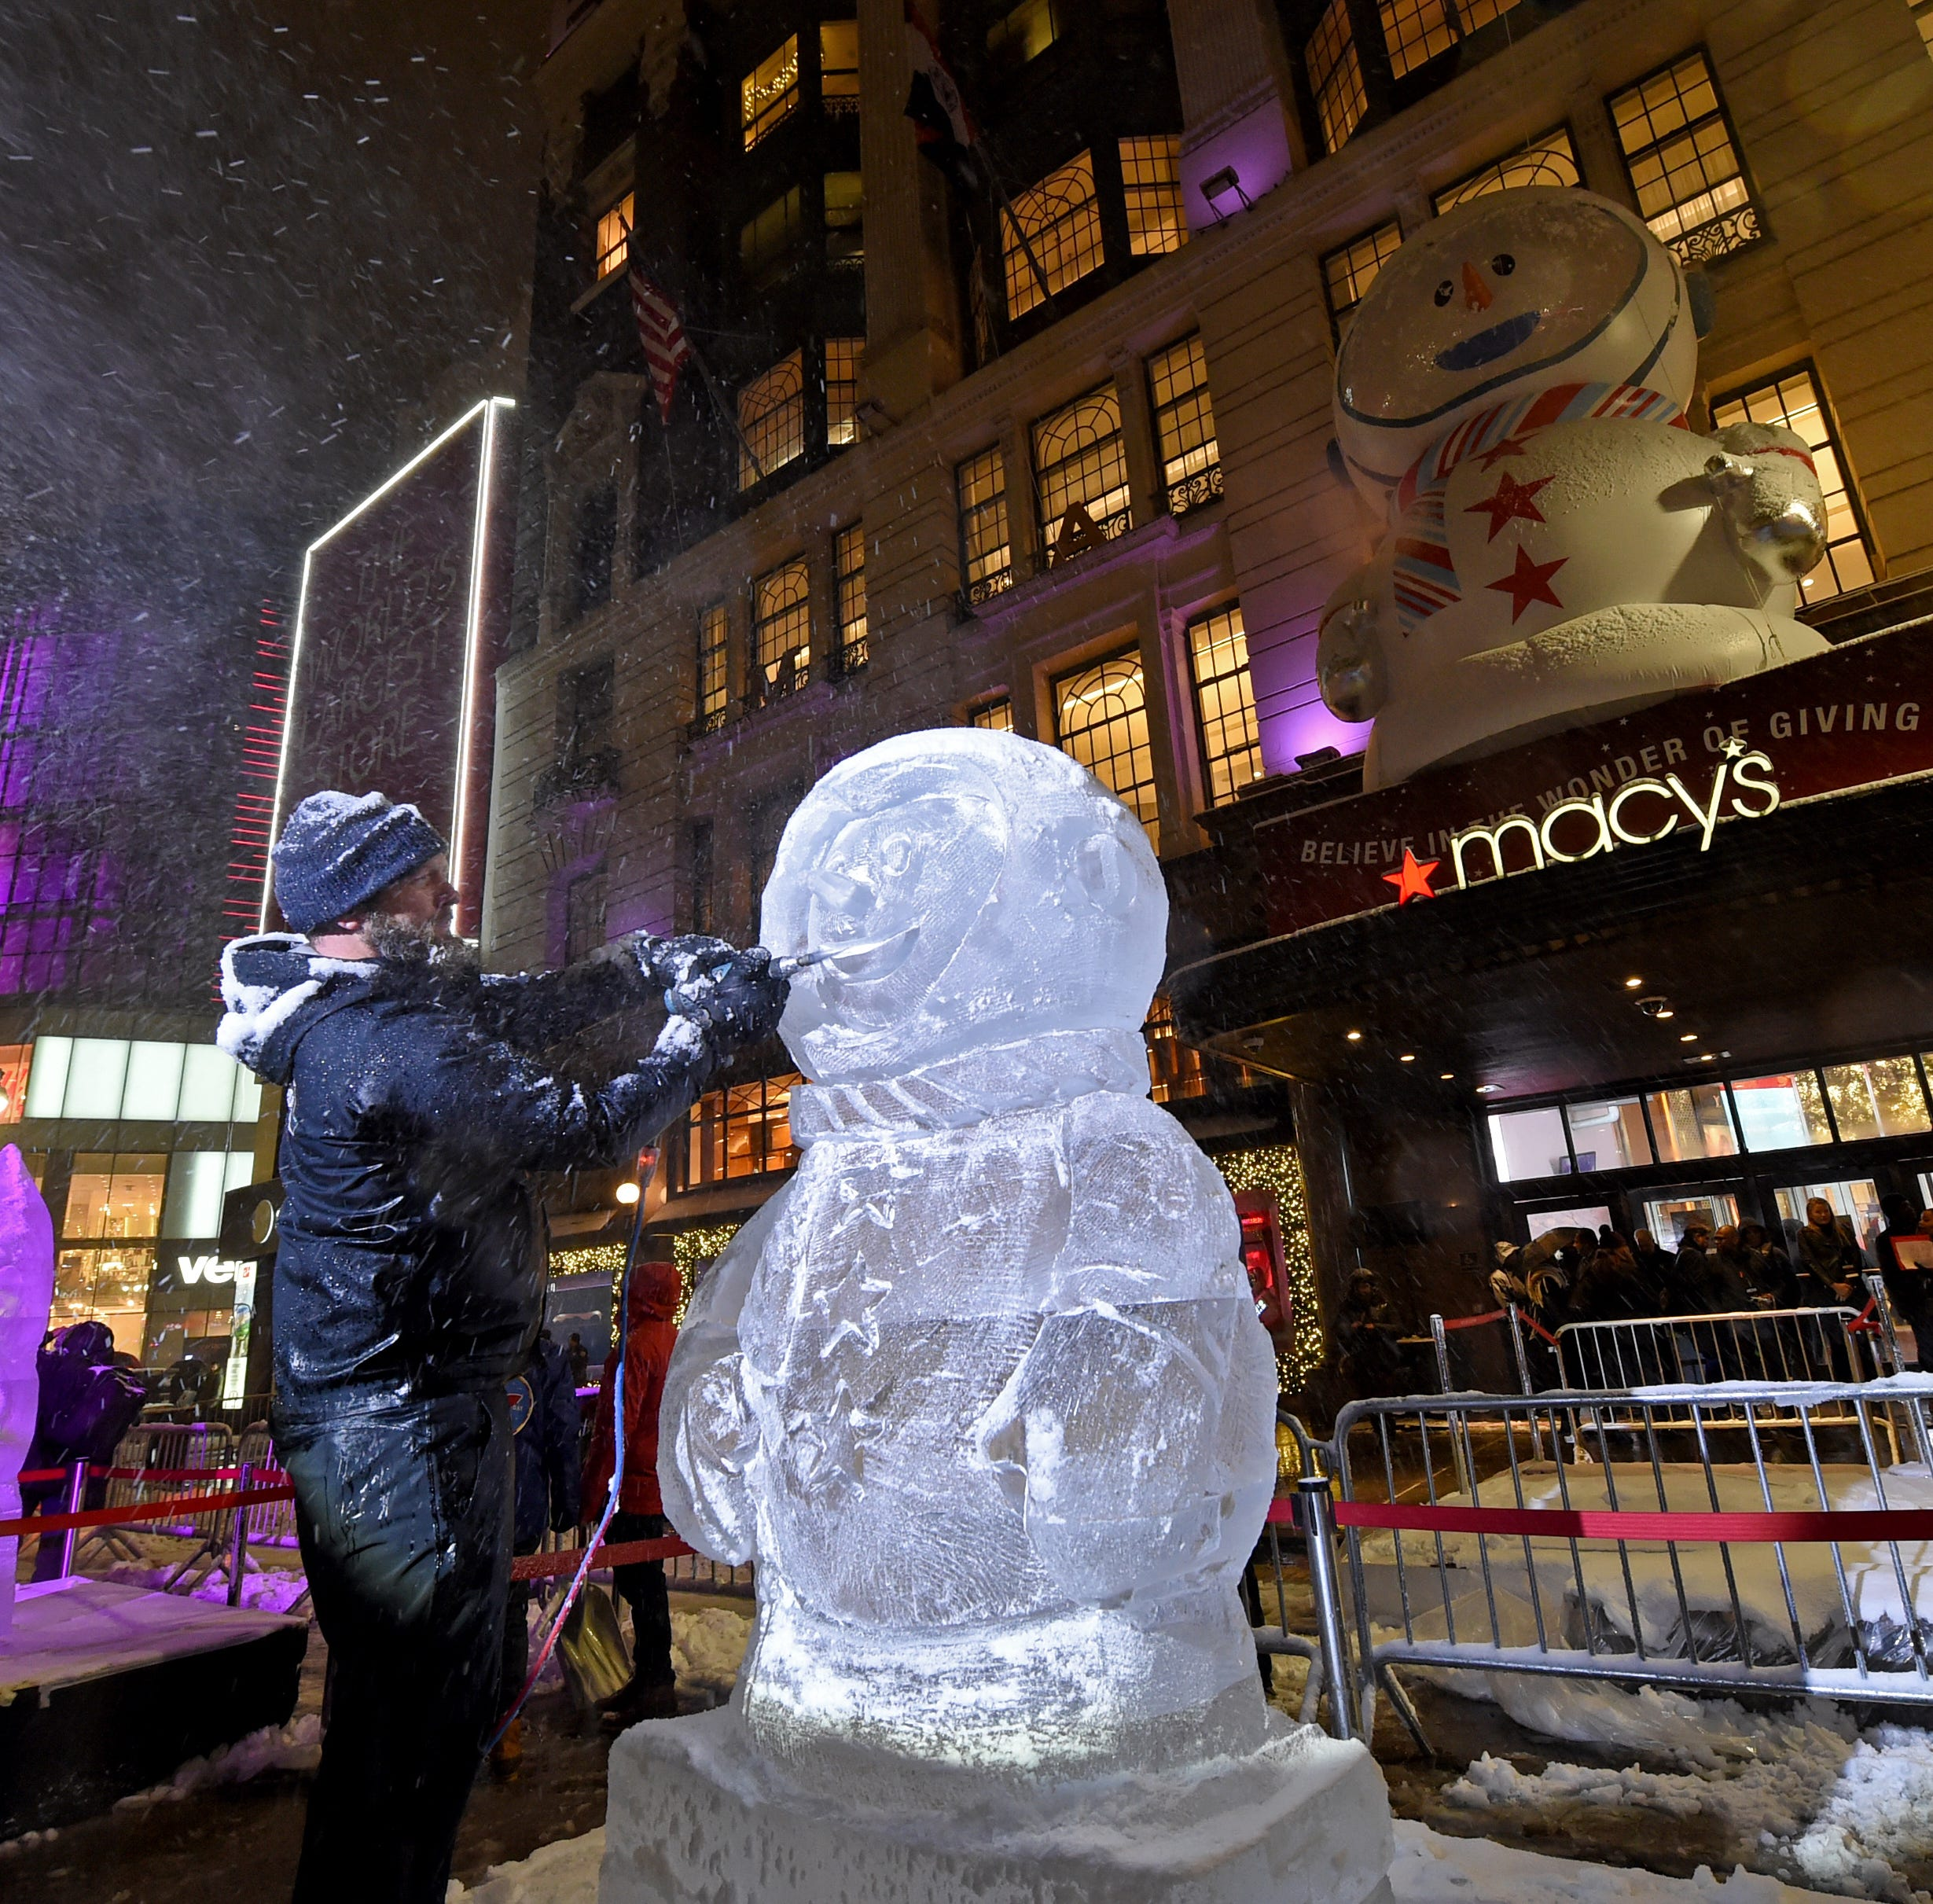 Macy's unveils its 2018 windows in November snowstorm